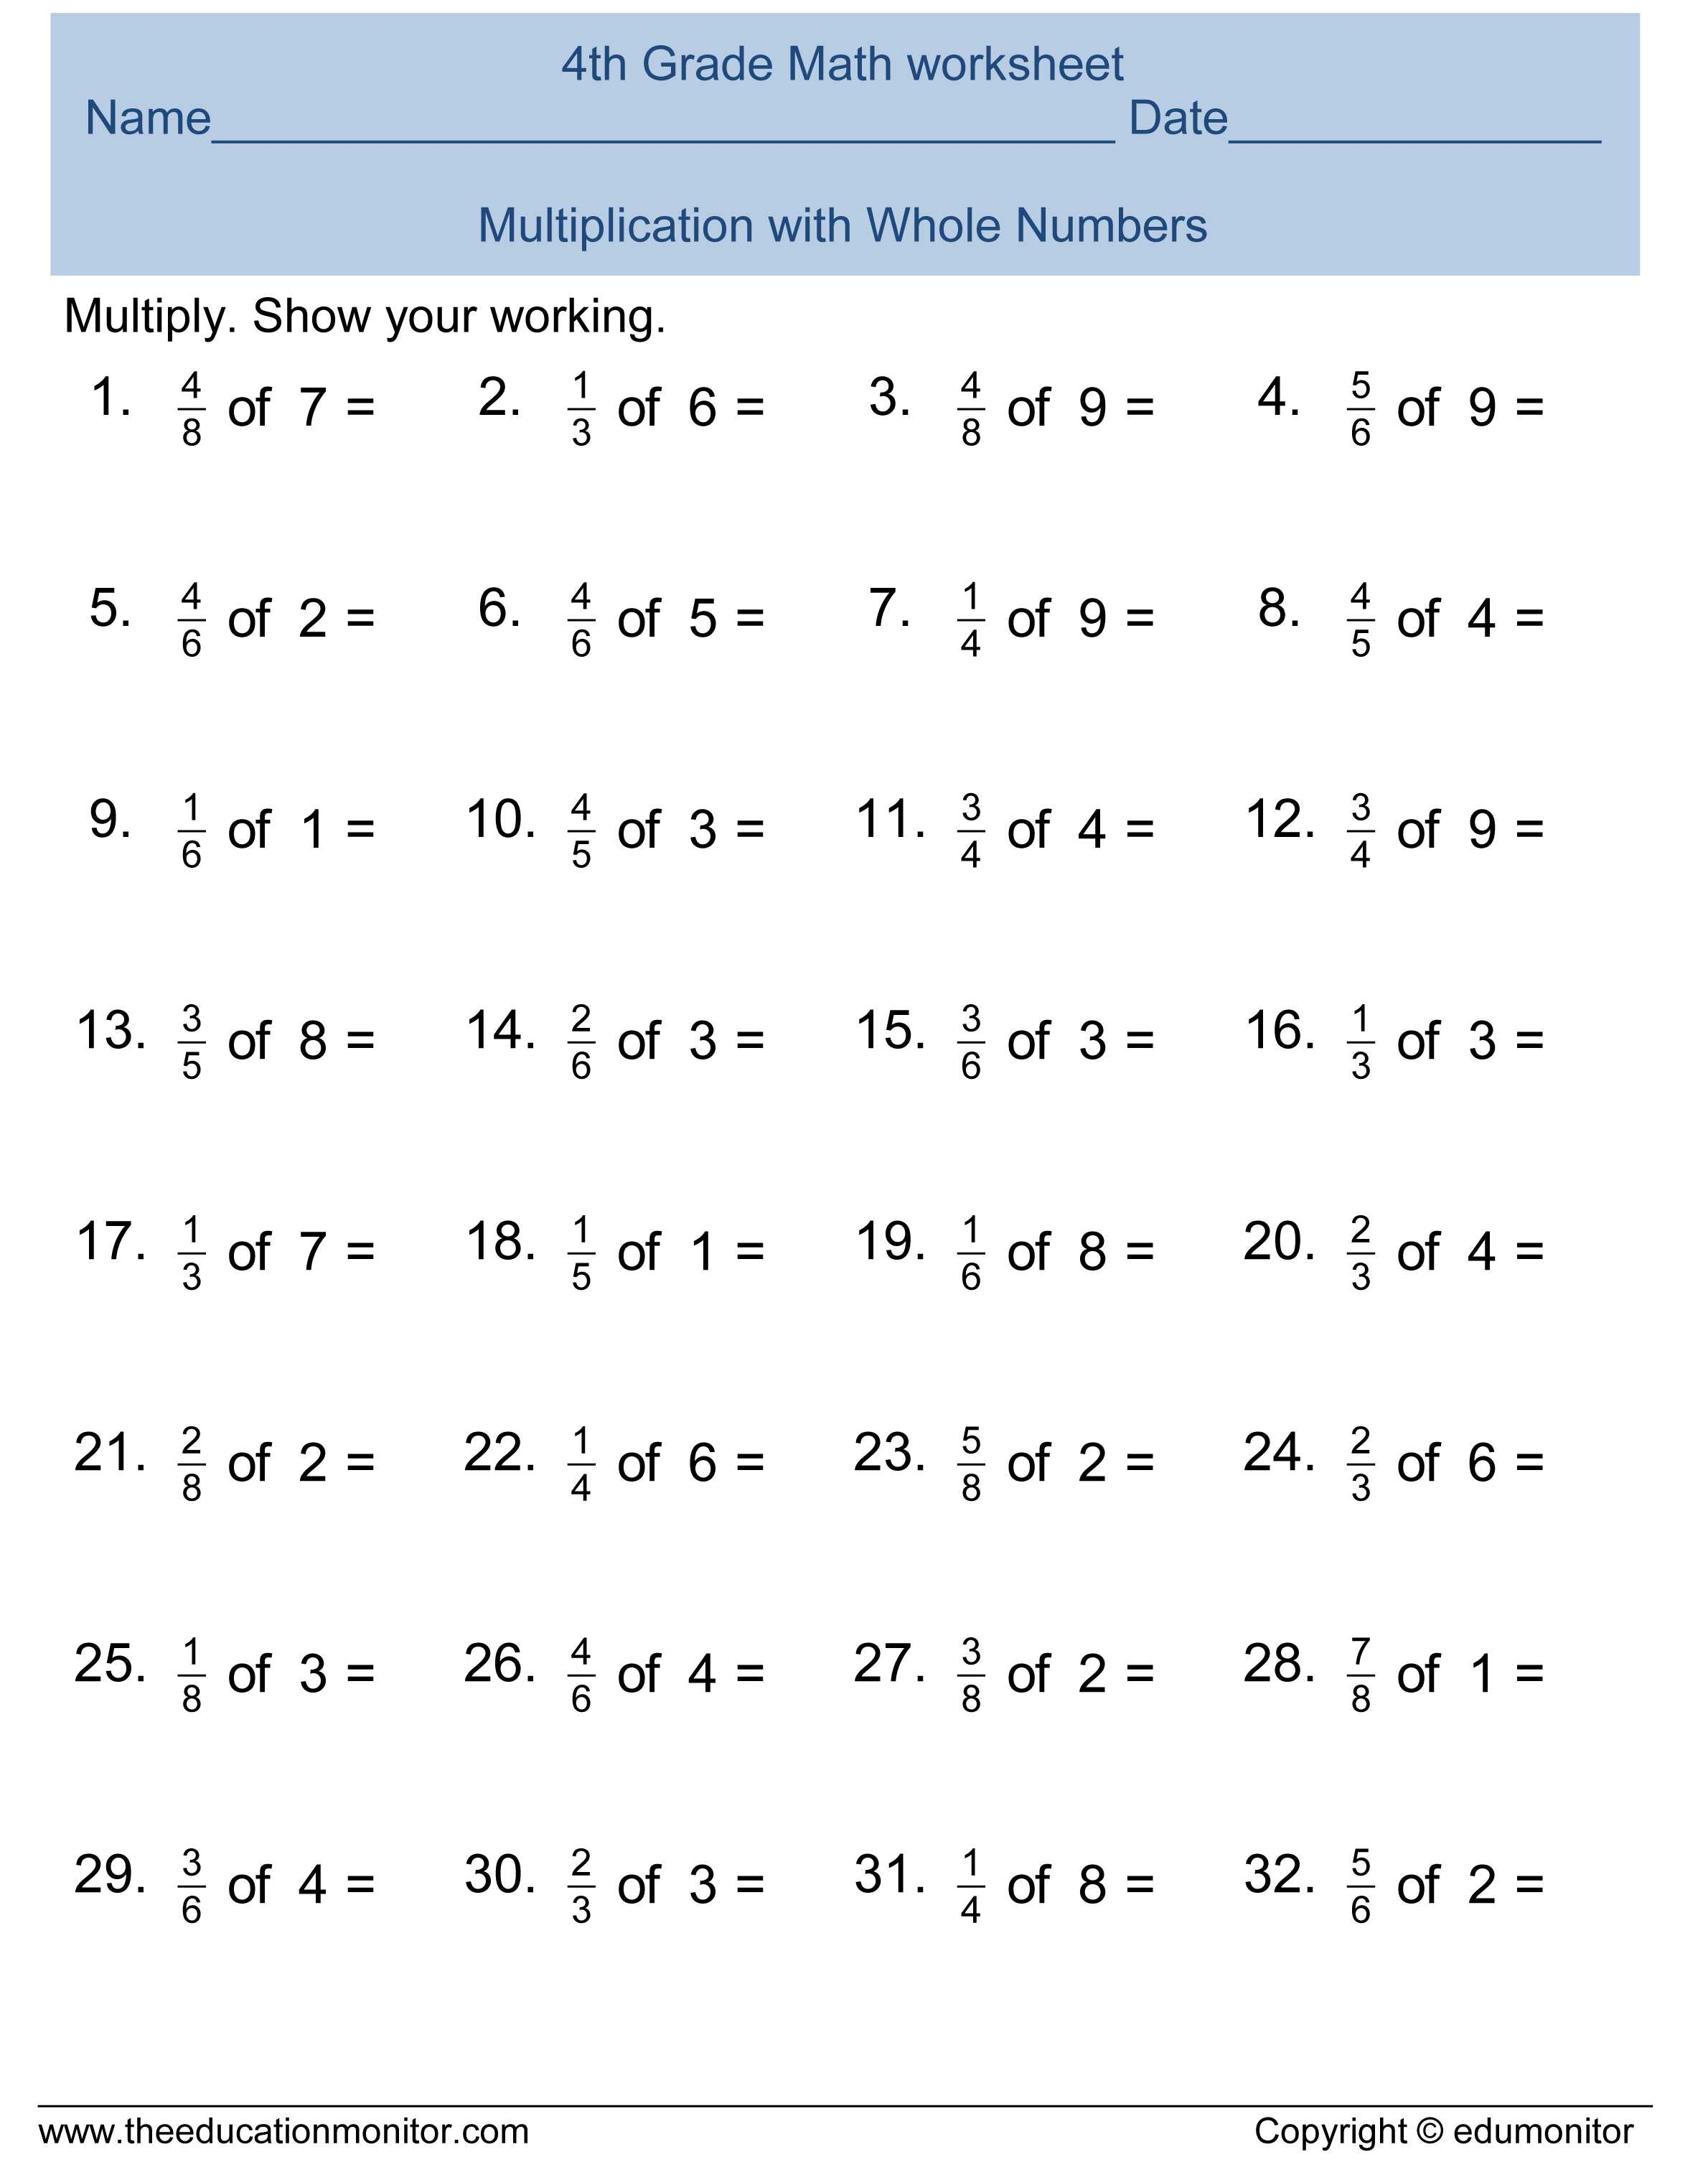 Subtracting Integers Worksheet Along with Fractions Adding and Subtracting Fractions Worksheets 4th Grade